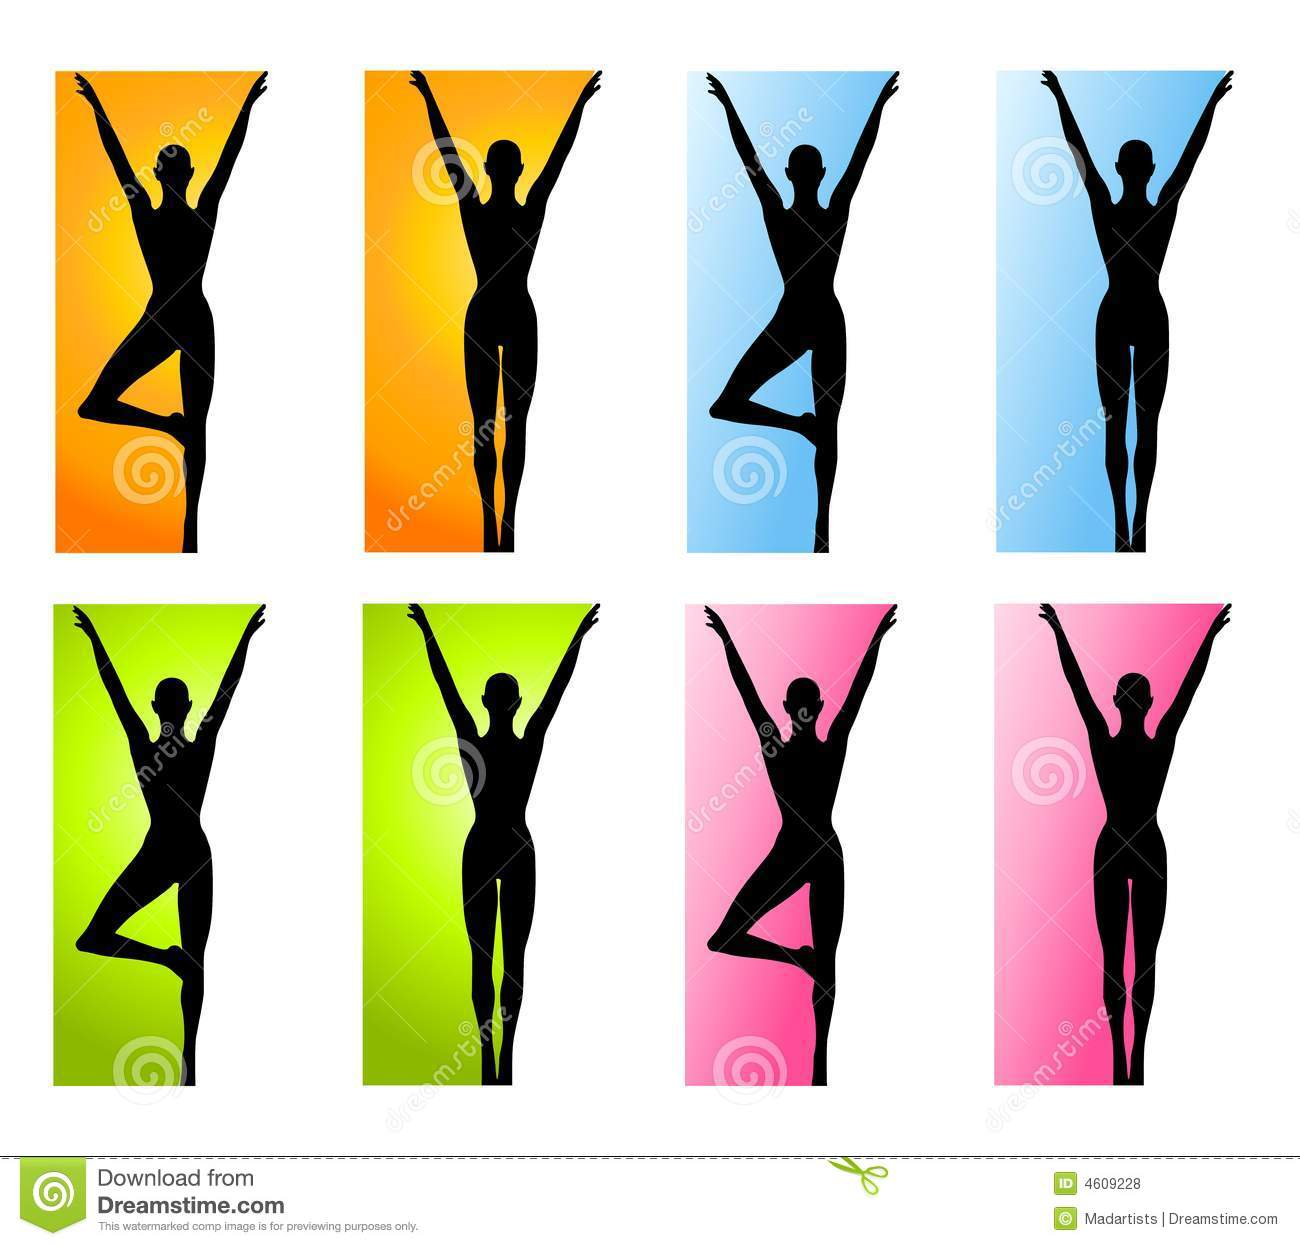 An Illustration Featuring 8 Different Fitness Yoga Dance Silhouettes